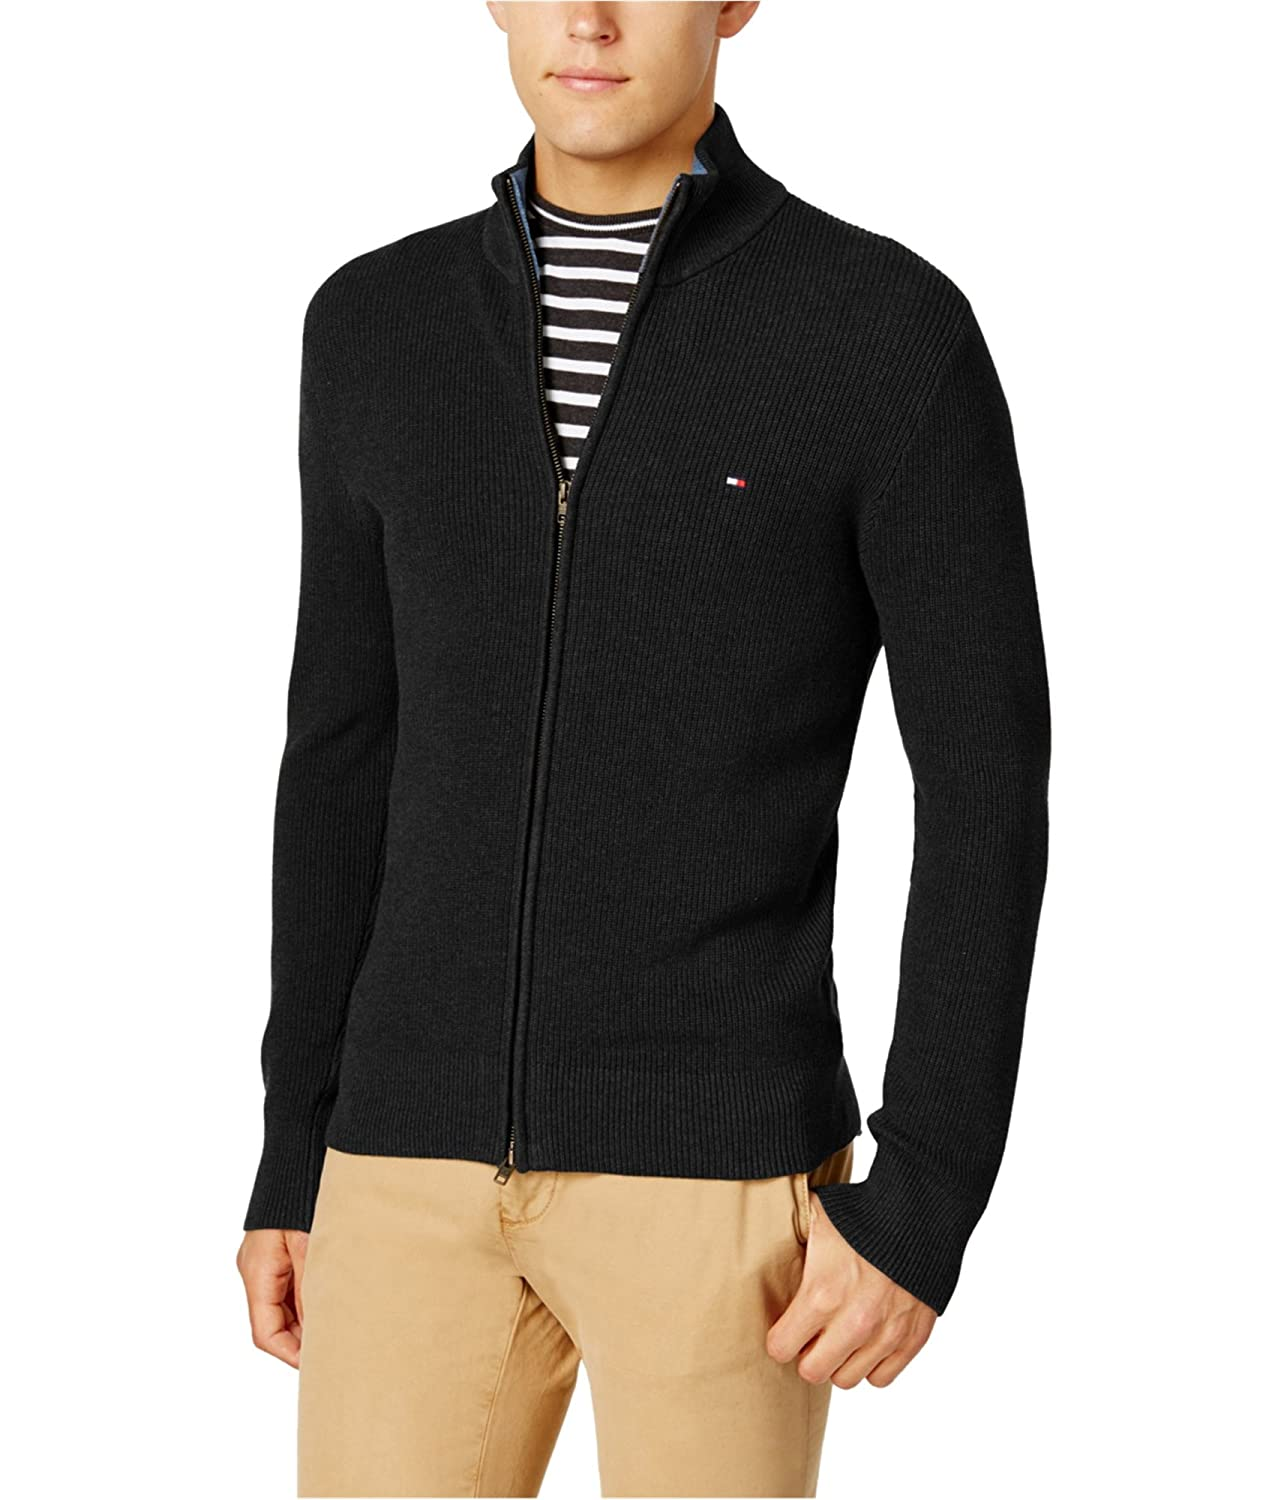 Tommy Hilfiger Mens Textured Ls Cardigan Sweater 78B6336